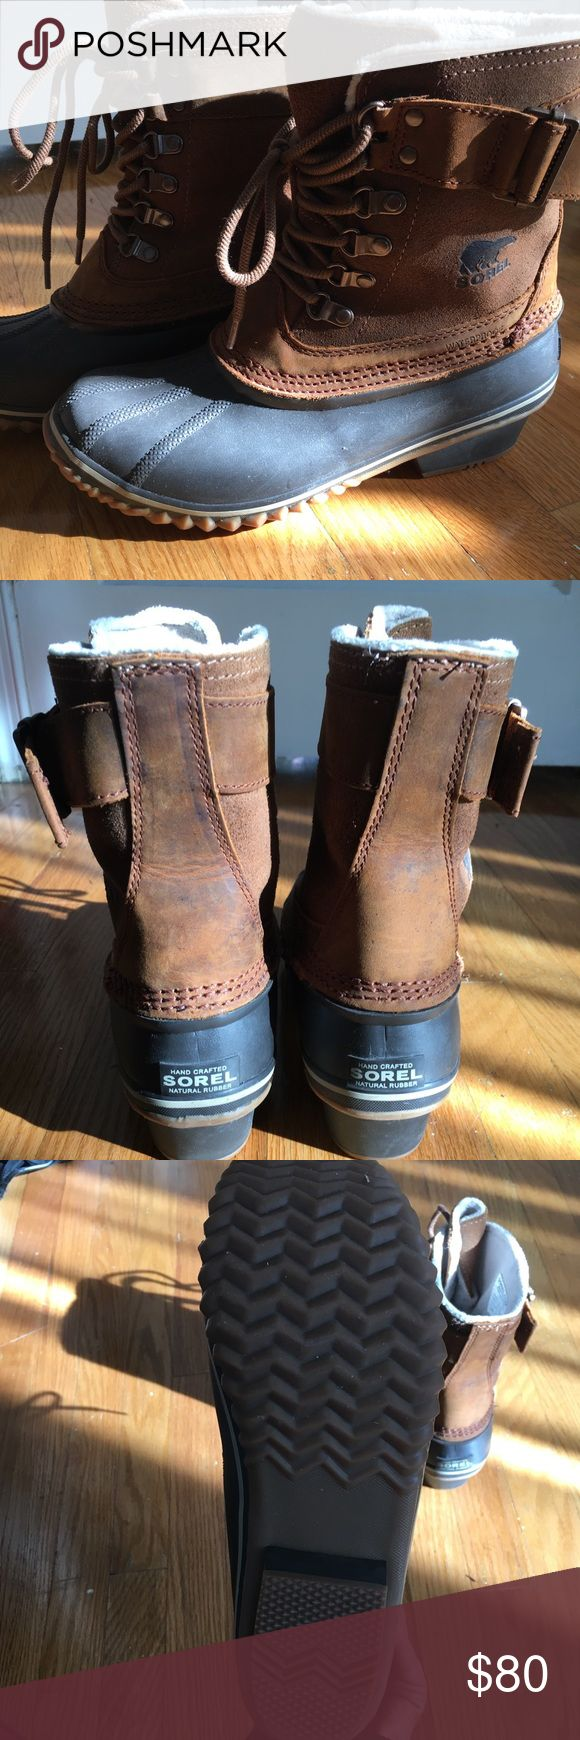 Sorel Women's Winter Fancy Lace Up II Boot Sorel winter boots just in time for the snow! I've worn these 3 times only! They are a size 7.5 but fit like a 6.5 with socks. Sorel Shoes Winter & Rain Boots